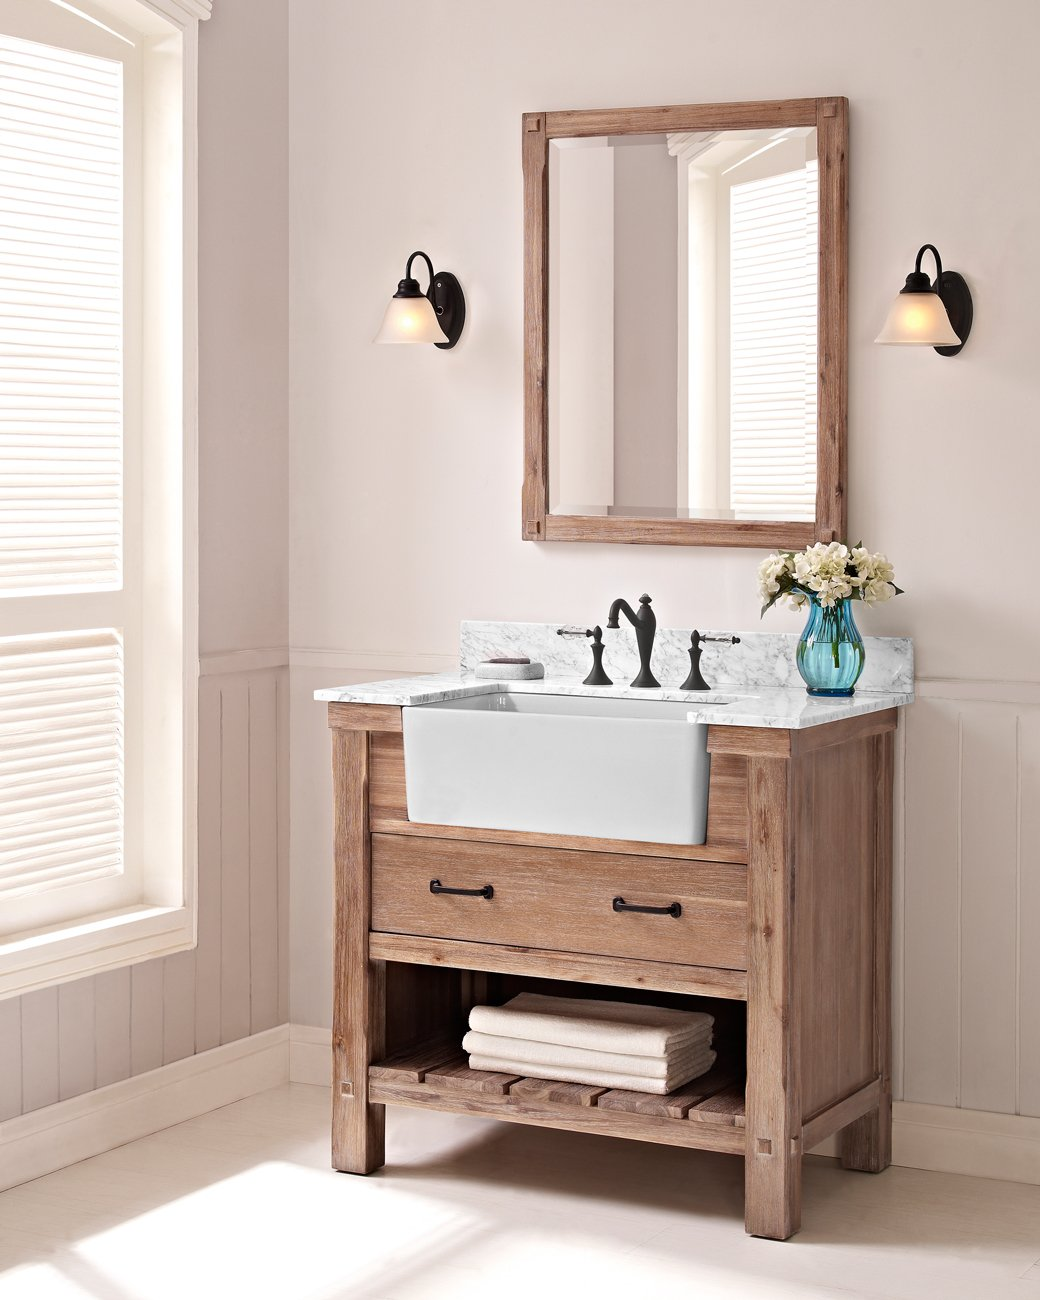 fairmont designs 1507 fv36 napa 36 farmhouse vanity base cabinet only sonoma sand amazoncom - Farmhouse Bathroom Vanity